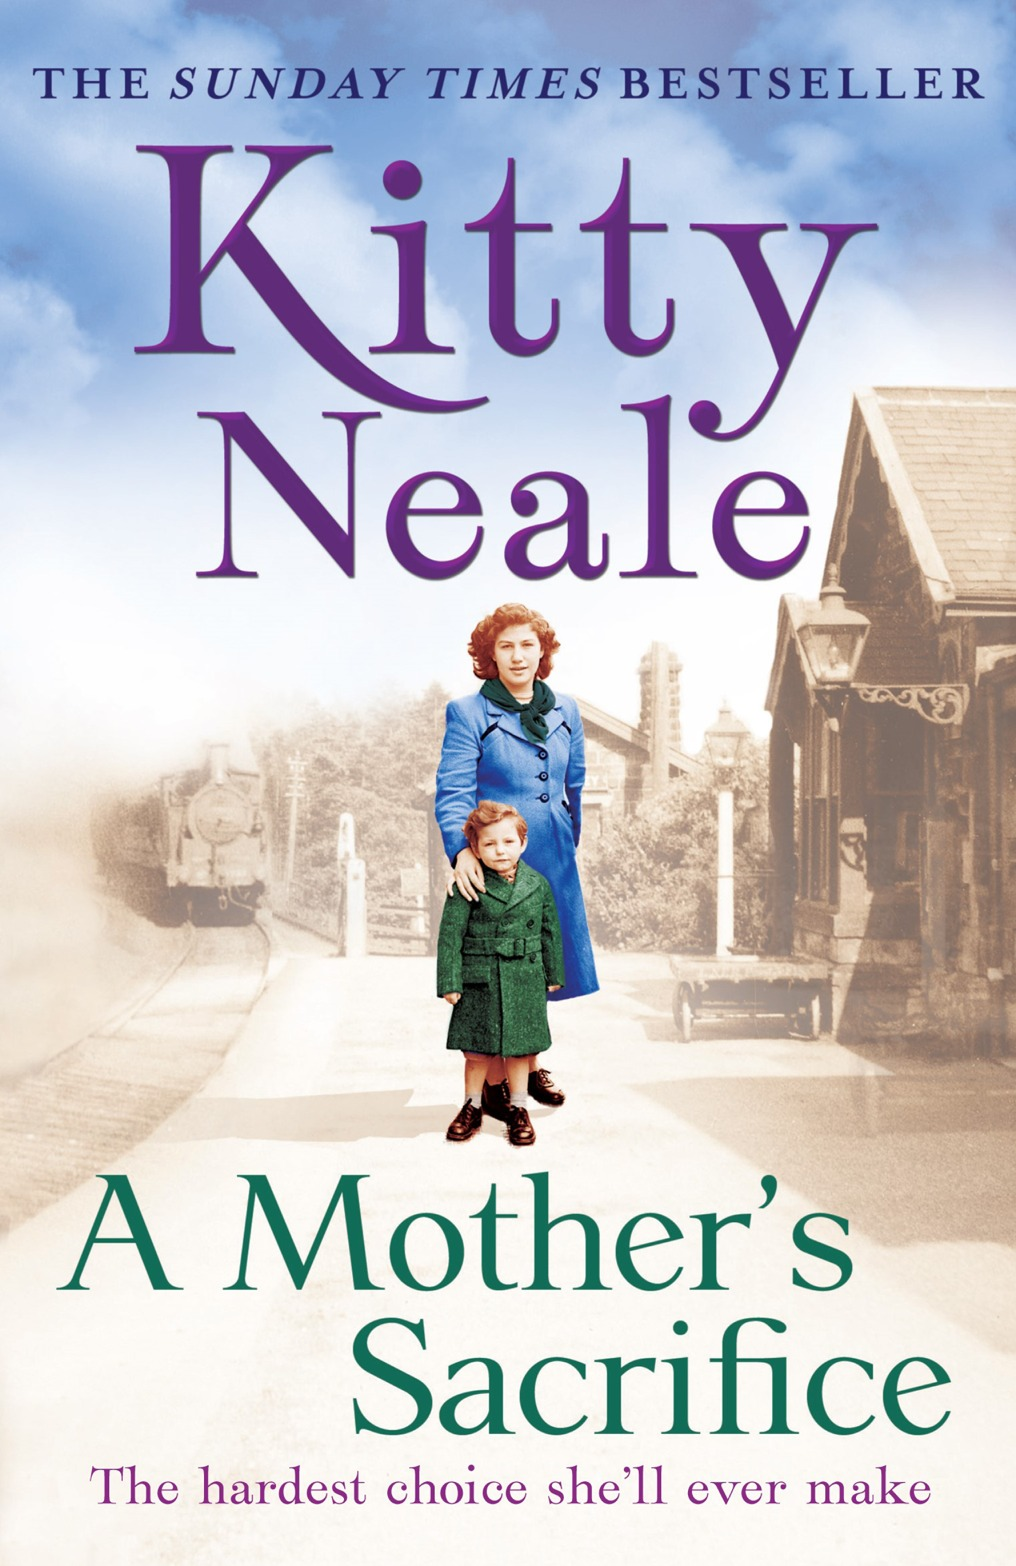 Kitty Neale A Mother's Sacrifice mary burbidge forever baby jenny's story a mother's diary